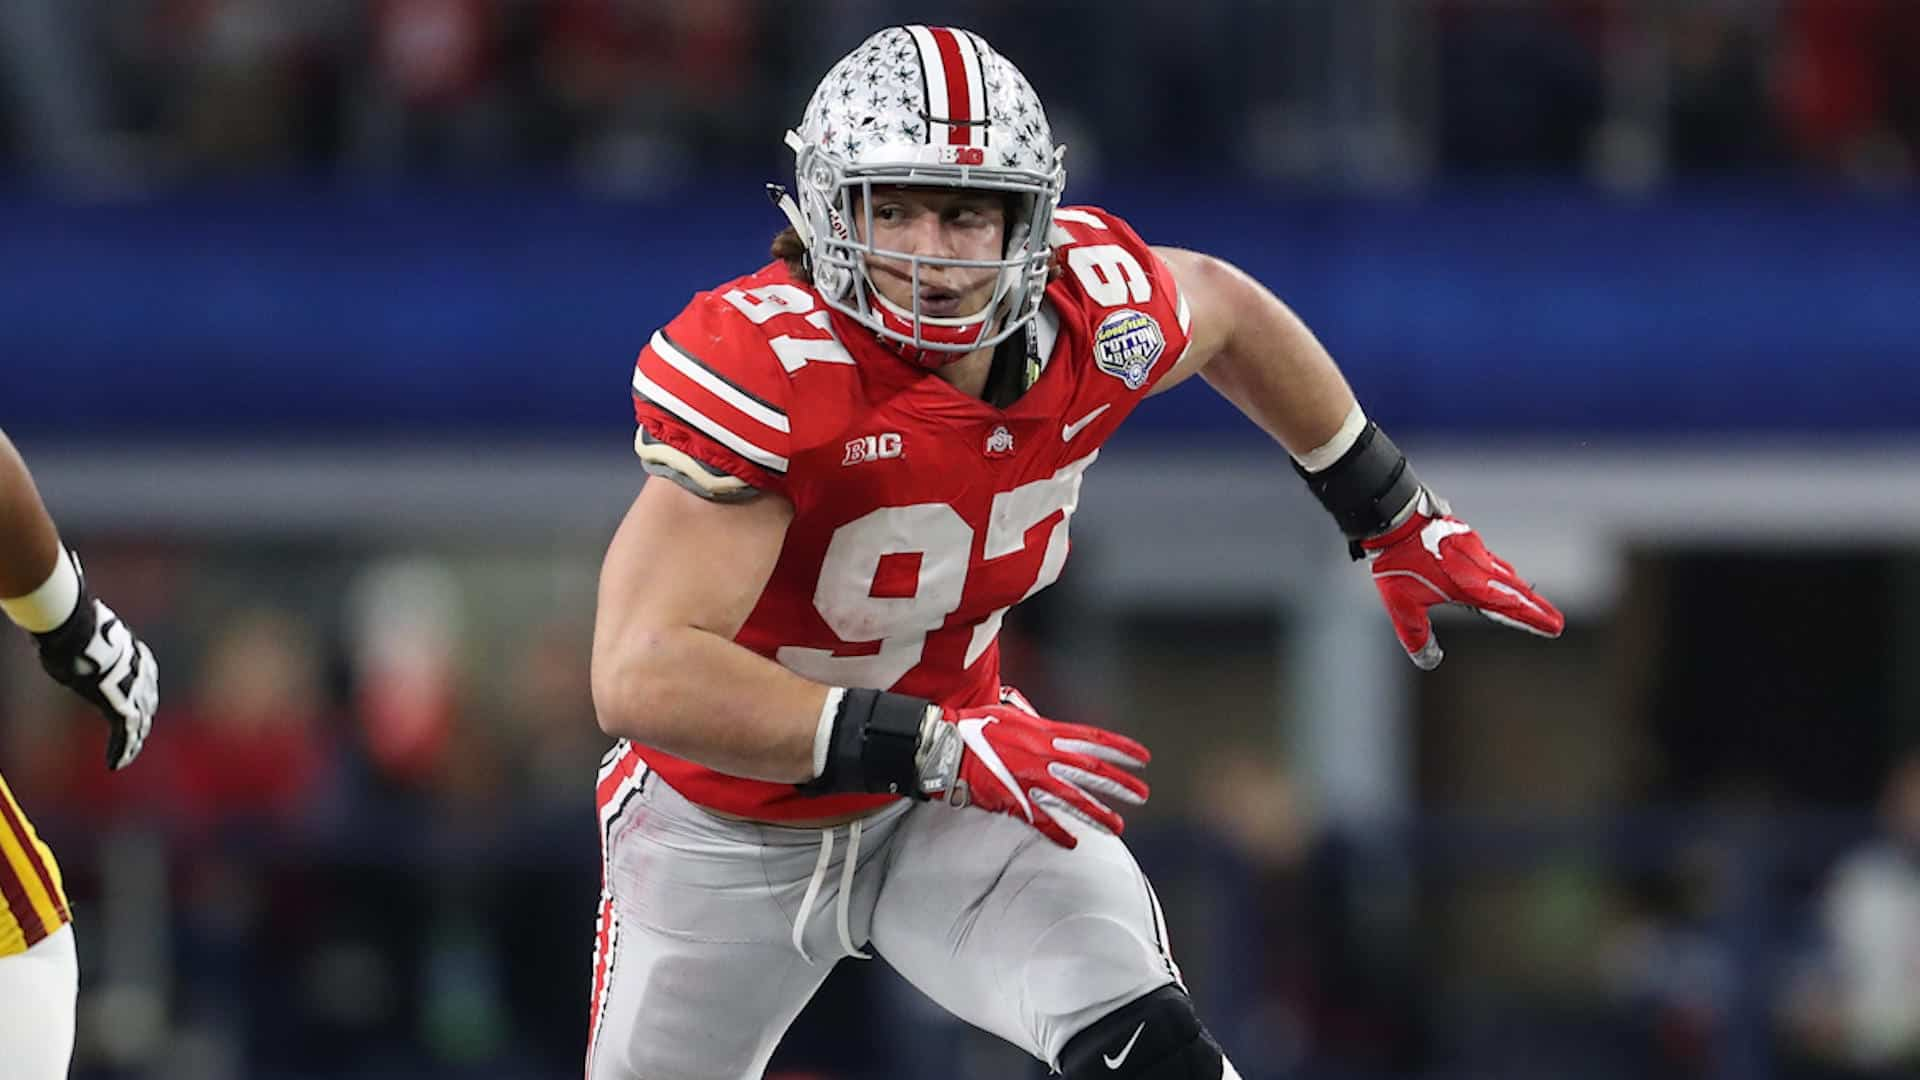 San Francisco 49ers Nick Bosa